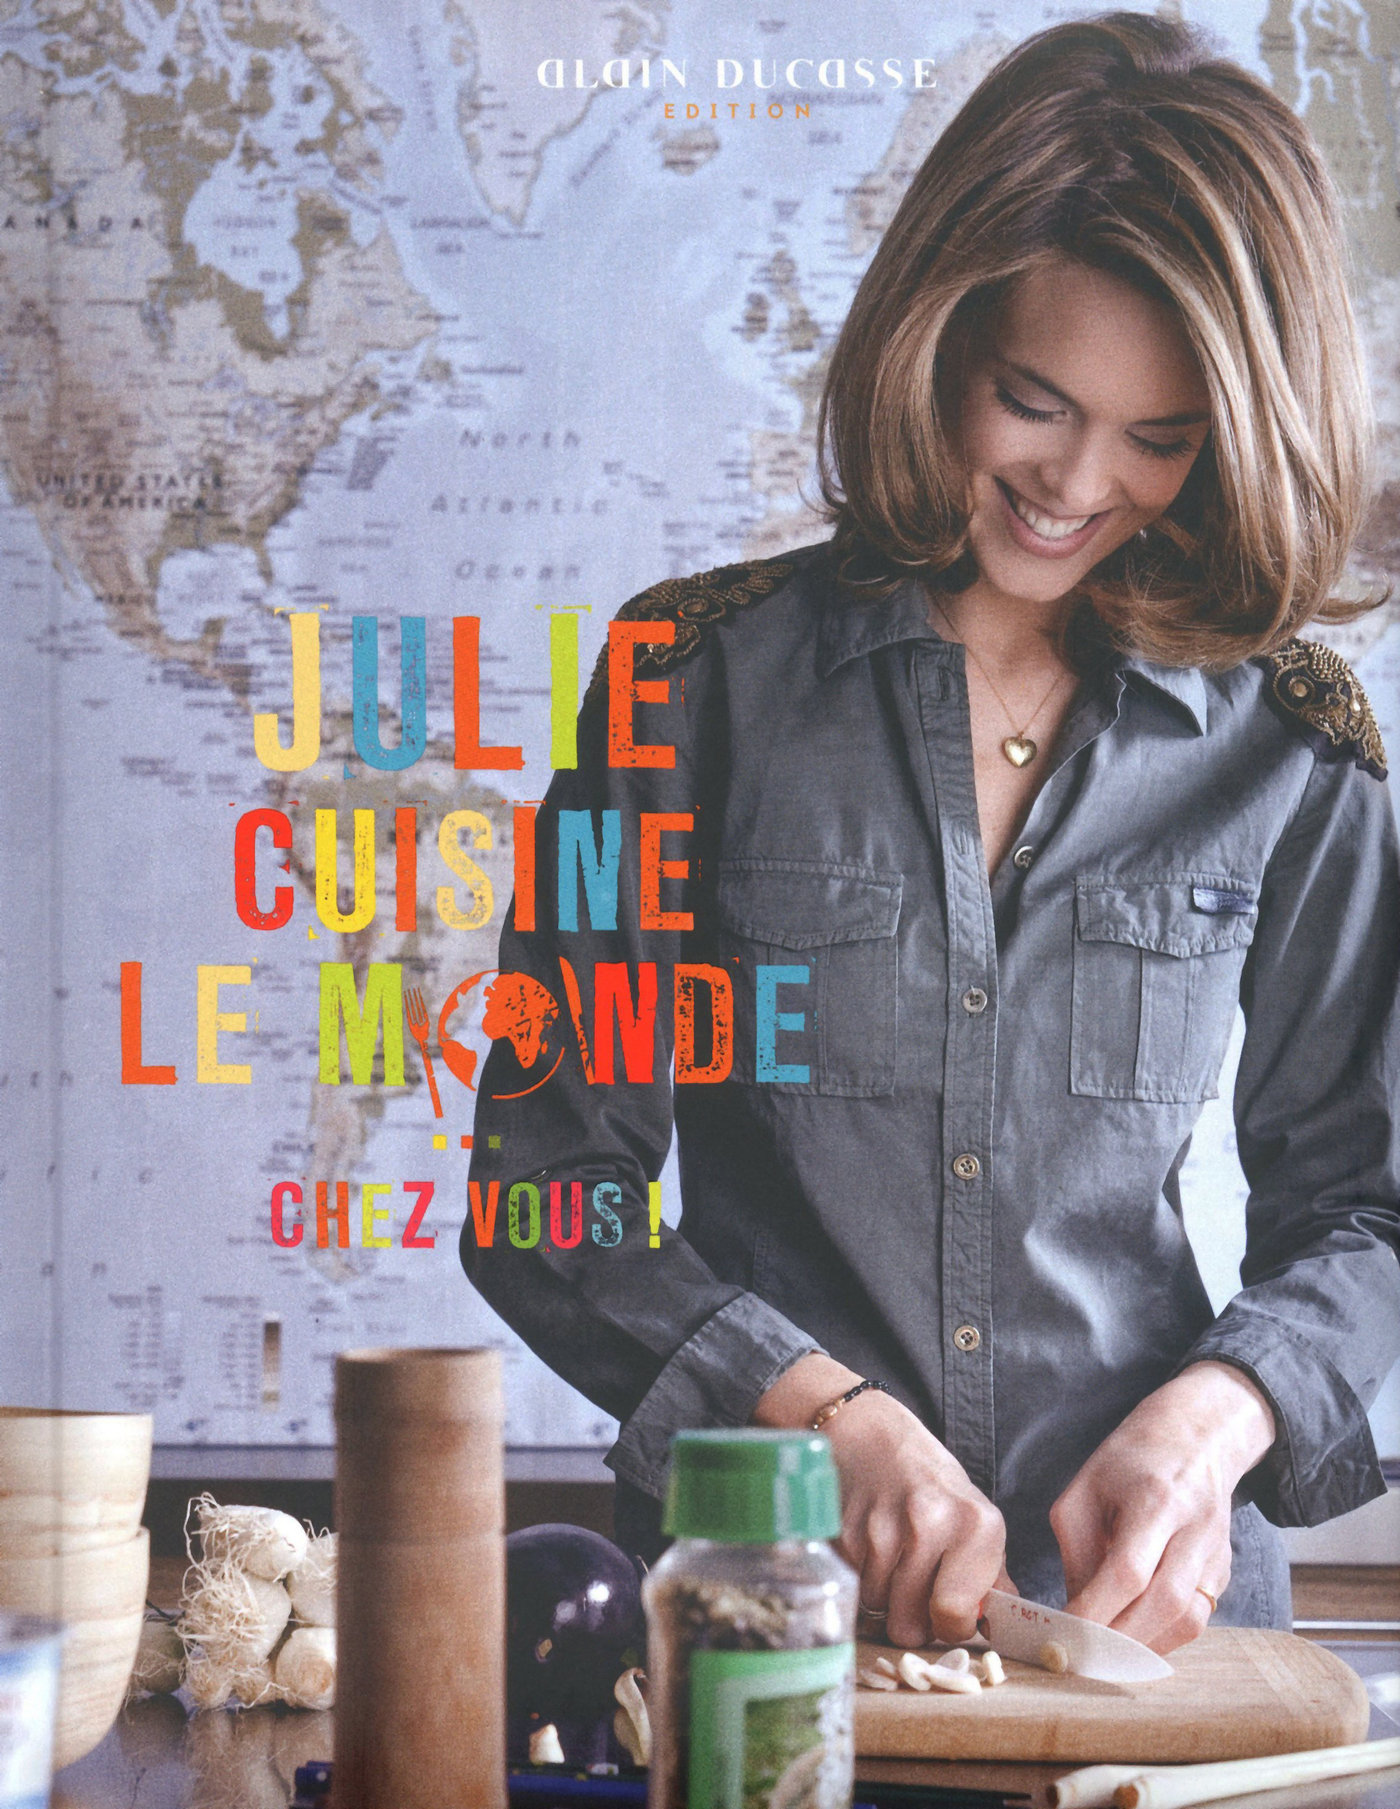 Julie cuisine le monde (ebook)